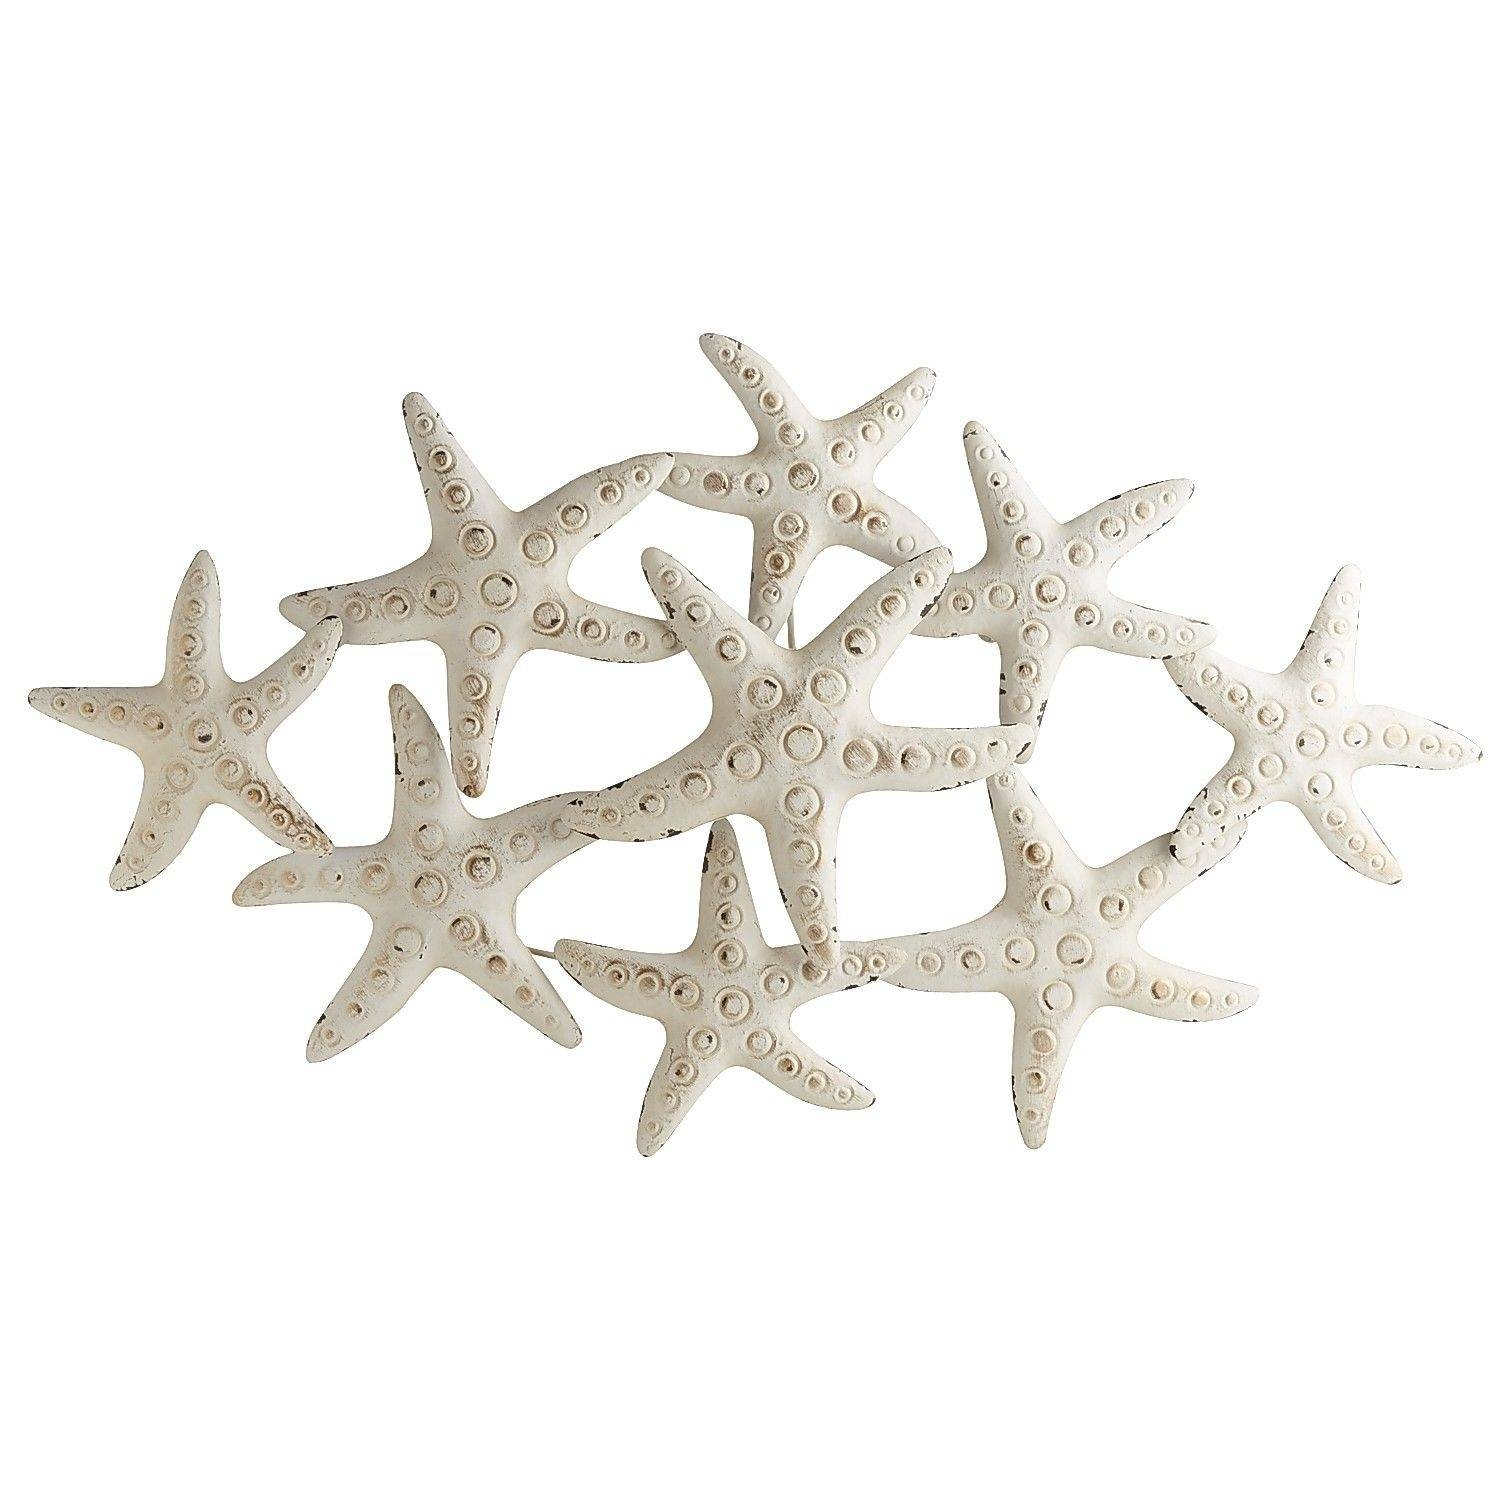 Large Metal Starfish Wall Decor • Wall Decorating Ideas Regarding Most Recent Large Starfish Wall Decors (View 13 of 25)